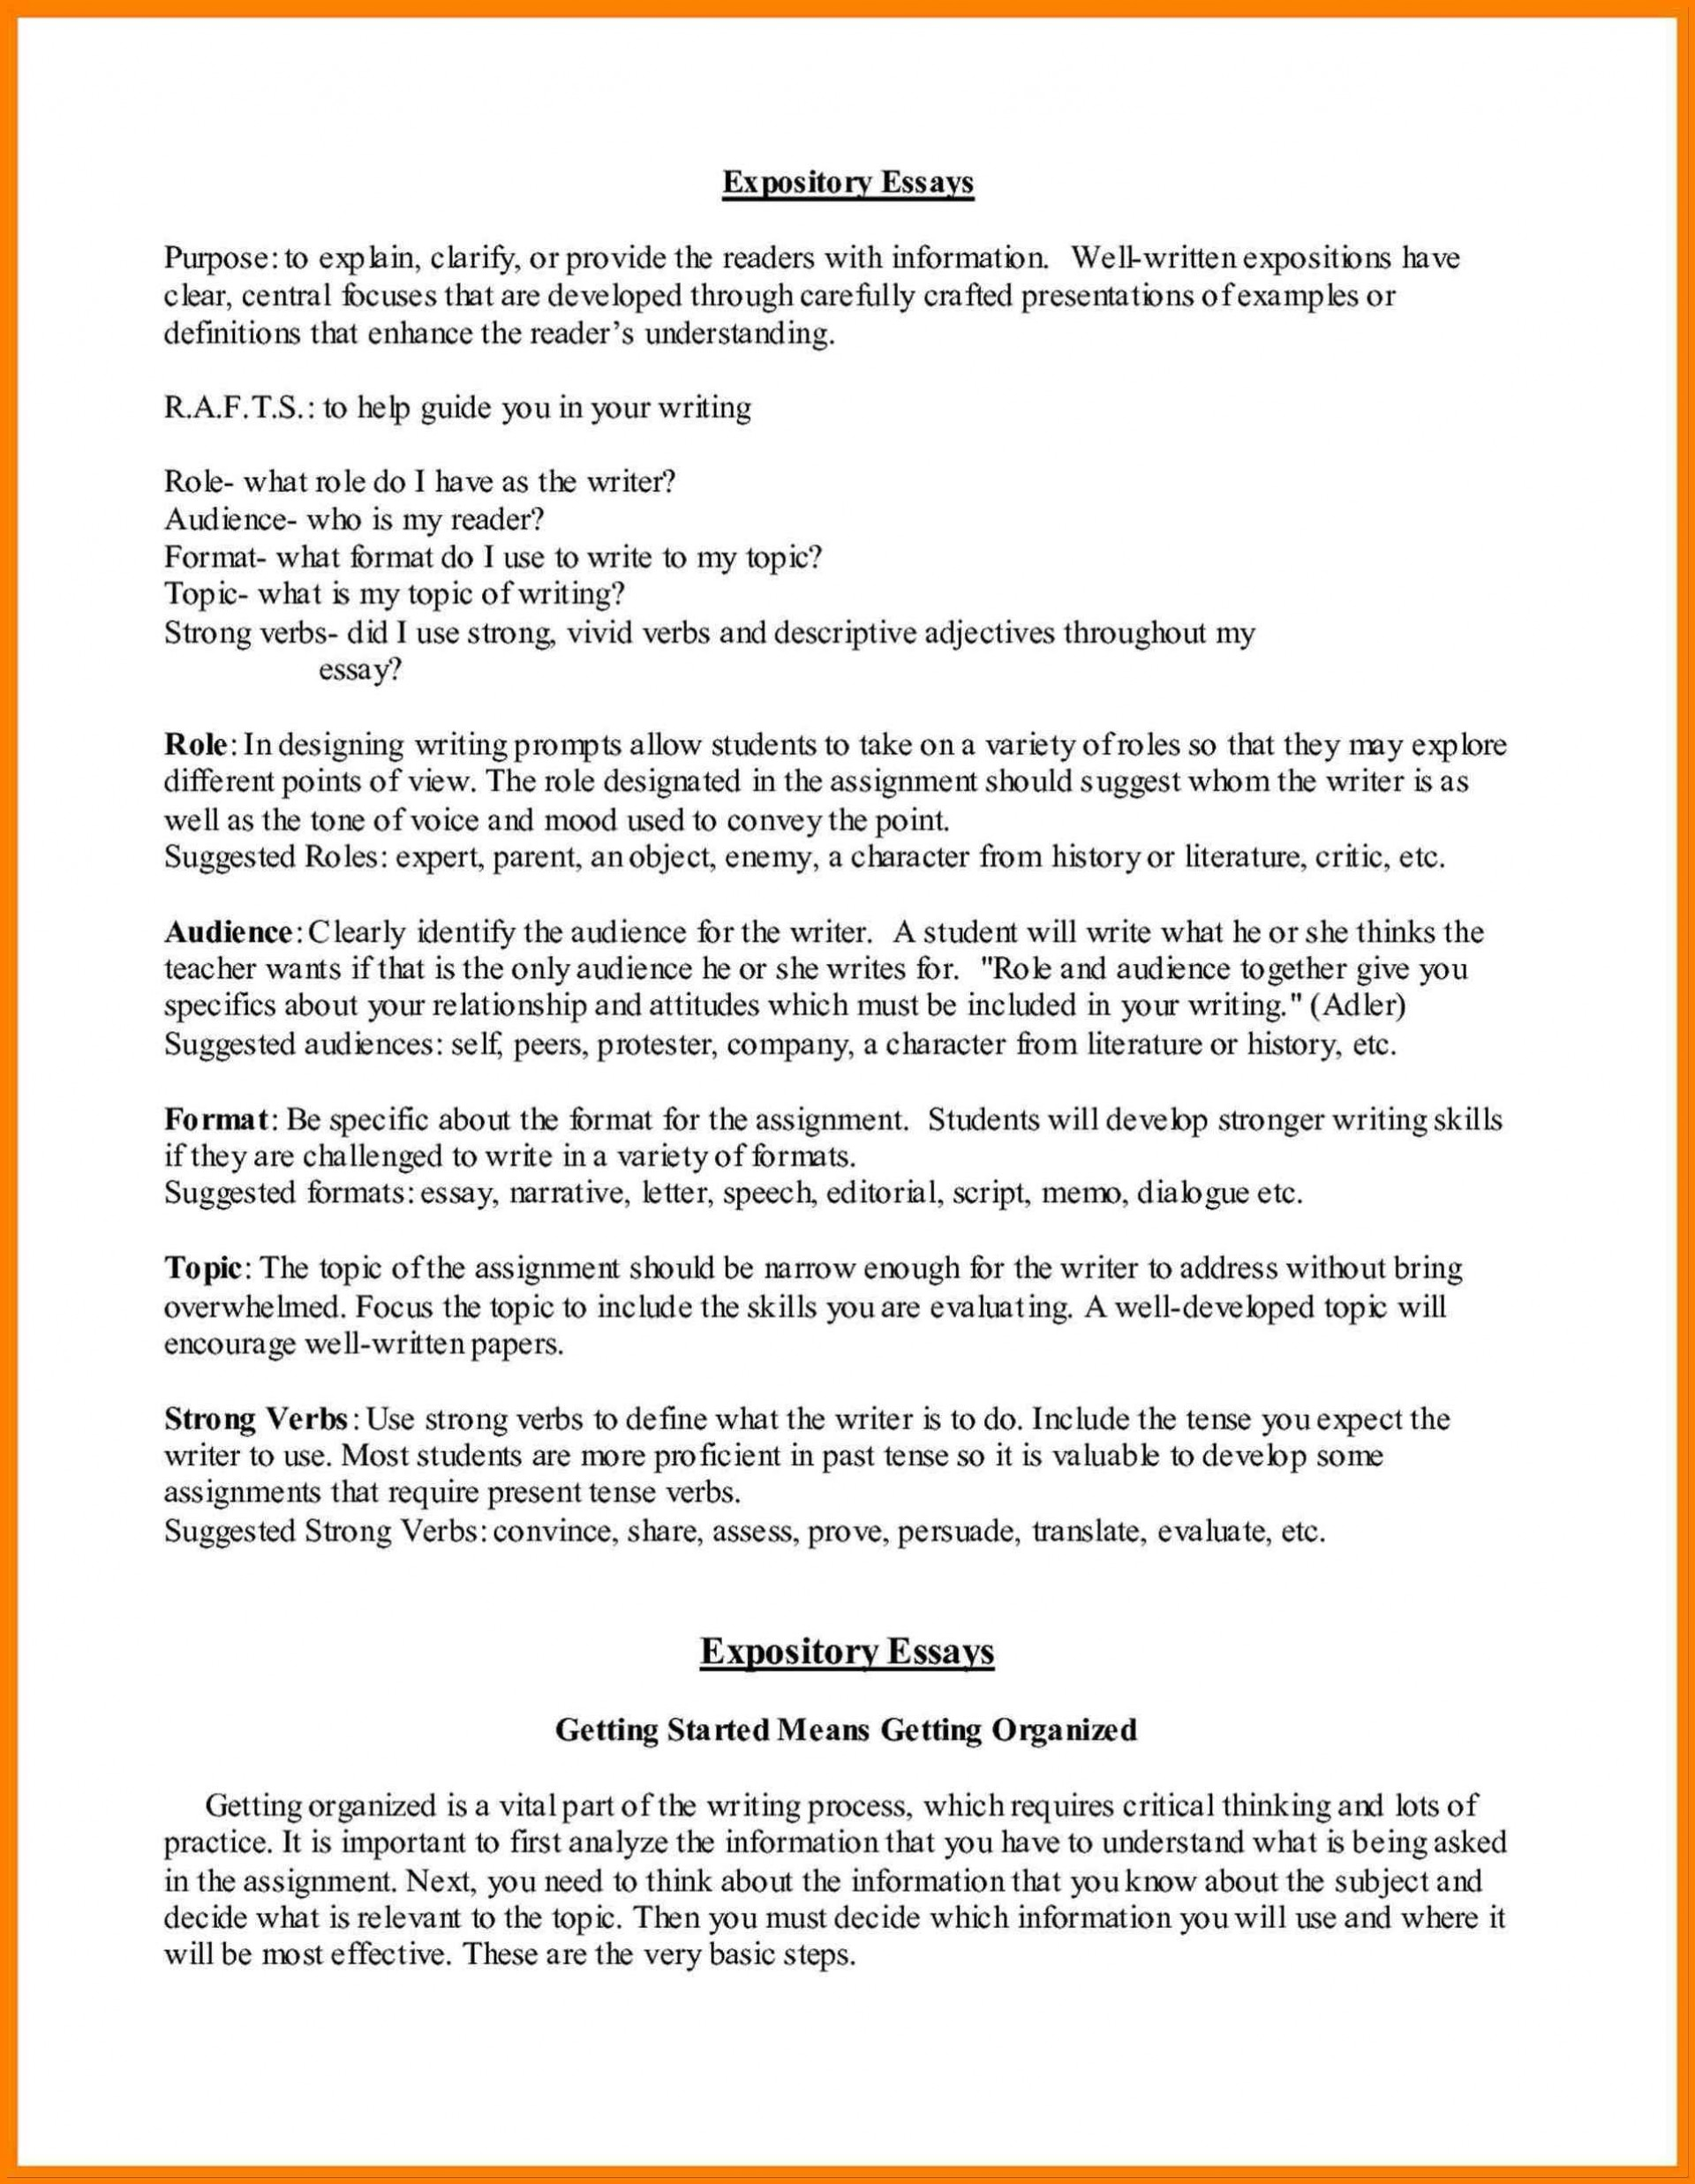 007 Editorial Essaymples For High School Highschool Students With Expected Salarymple Sample Sat Prompts Essays Need Help My What To Say In Email Imposing Essay Examples Short About Travel 1920